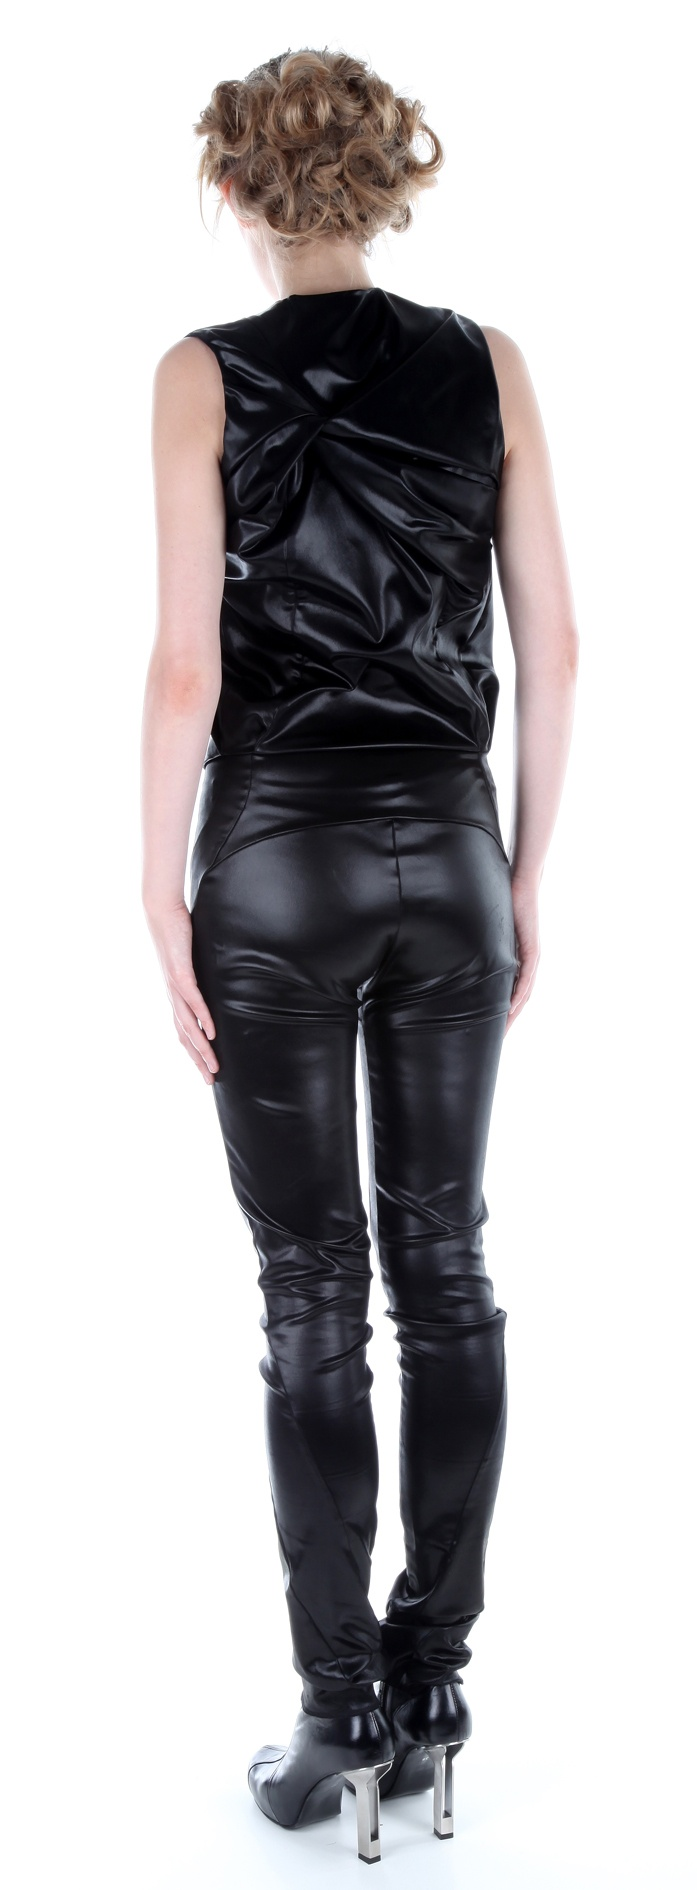 Back view: Jumpsuit ( silk satin), shoes ( leather, stainless-steel heel)